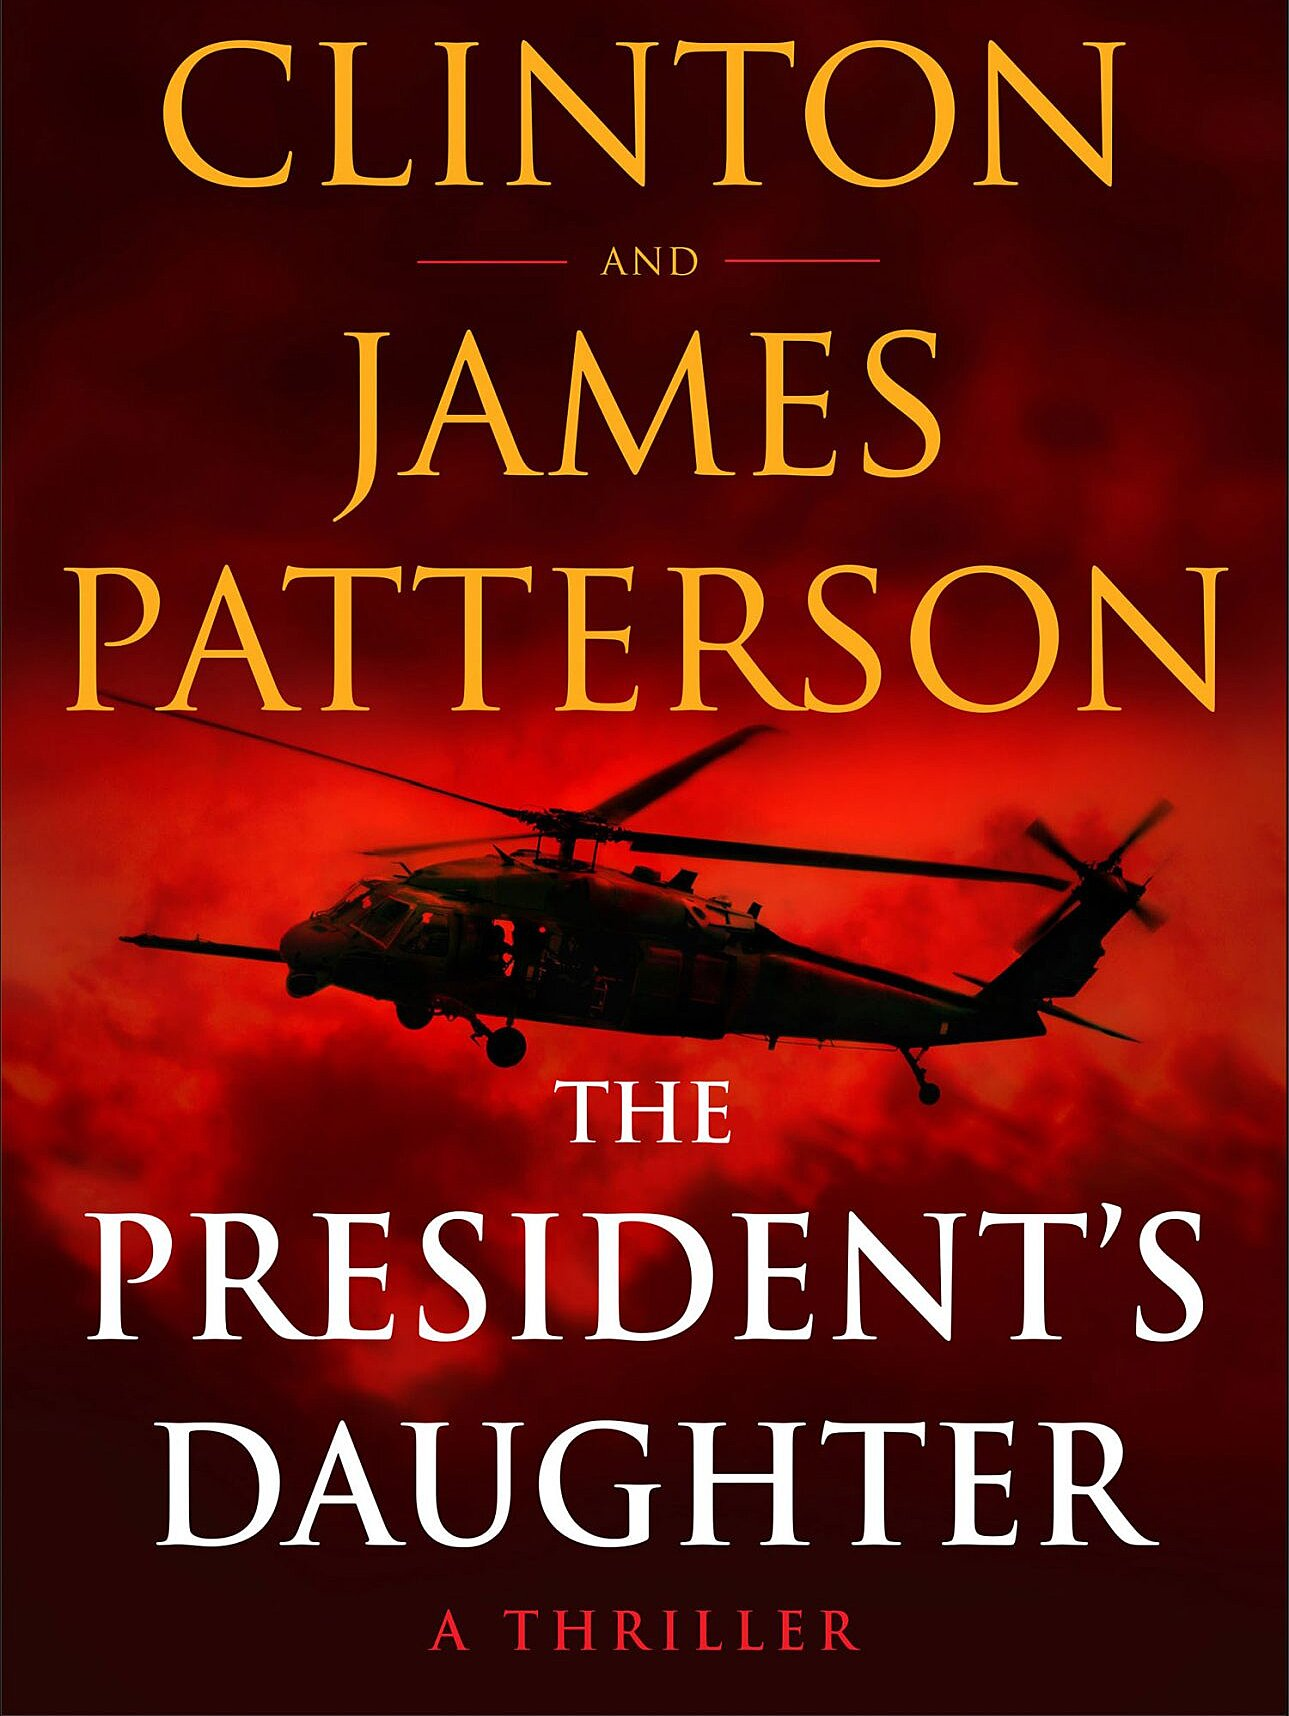 THE PRESIDENT'S DAUGHTER by BILL CLINTON AND JAME PATTERSON 🤩